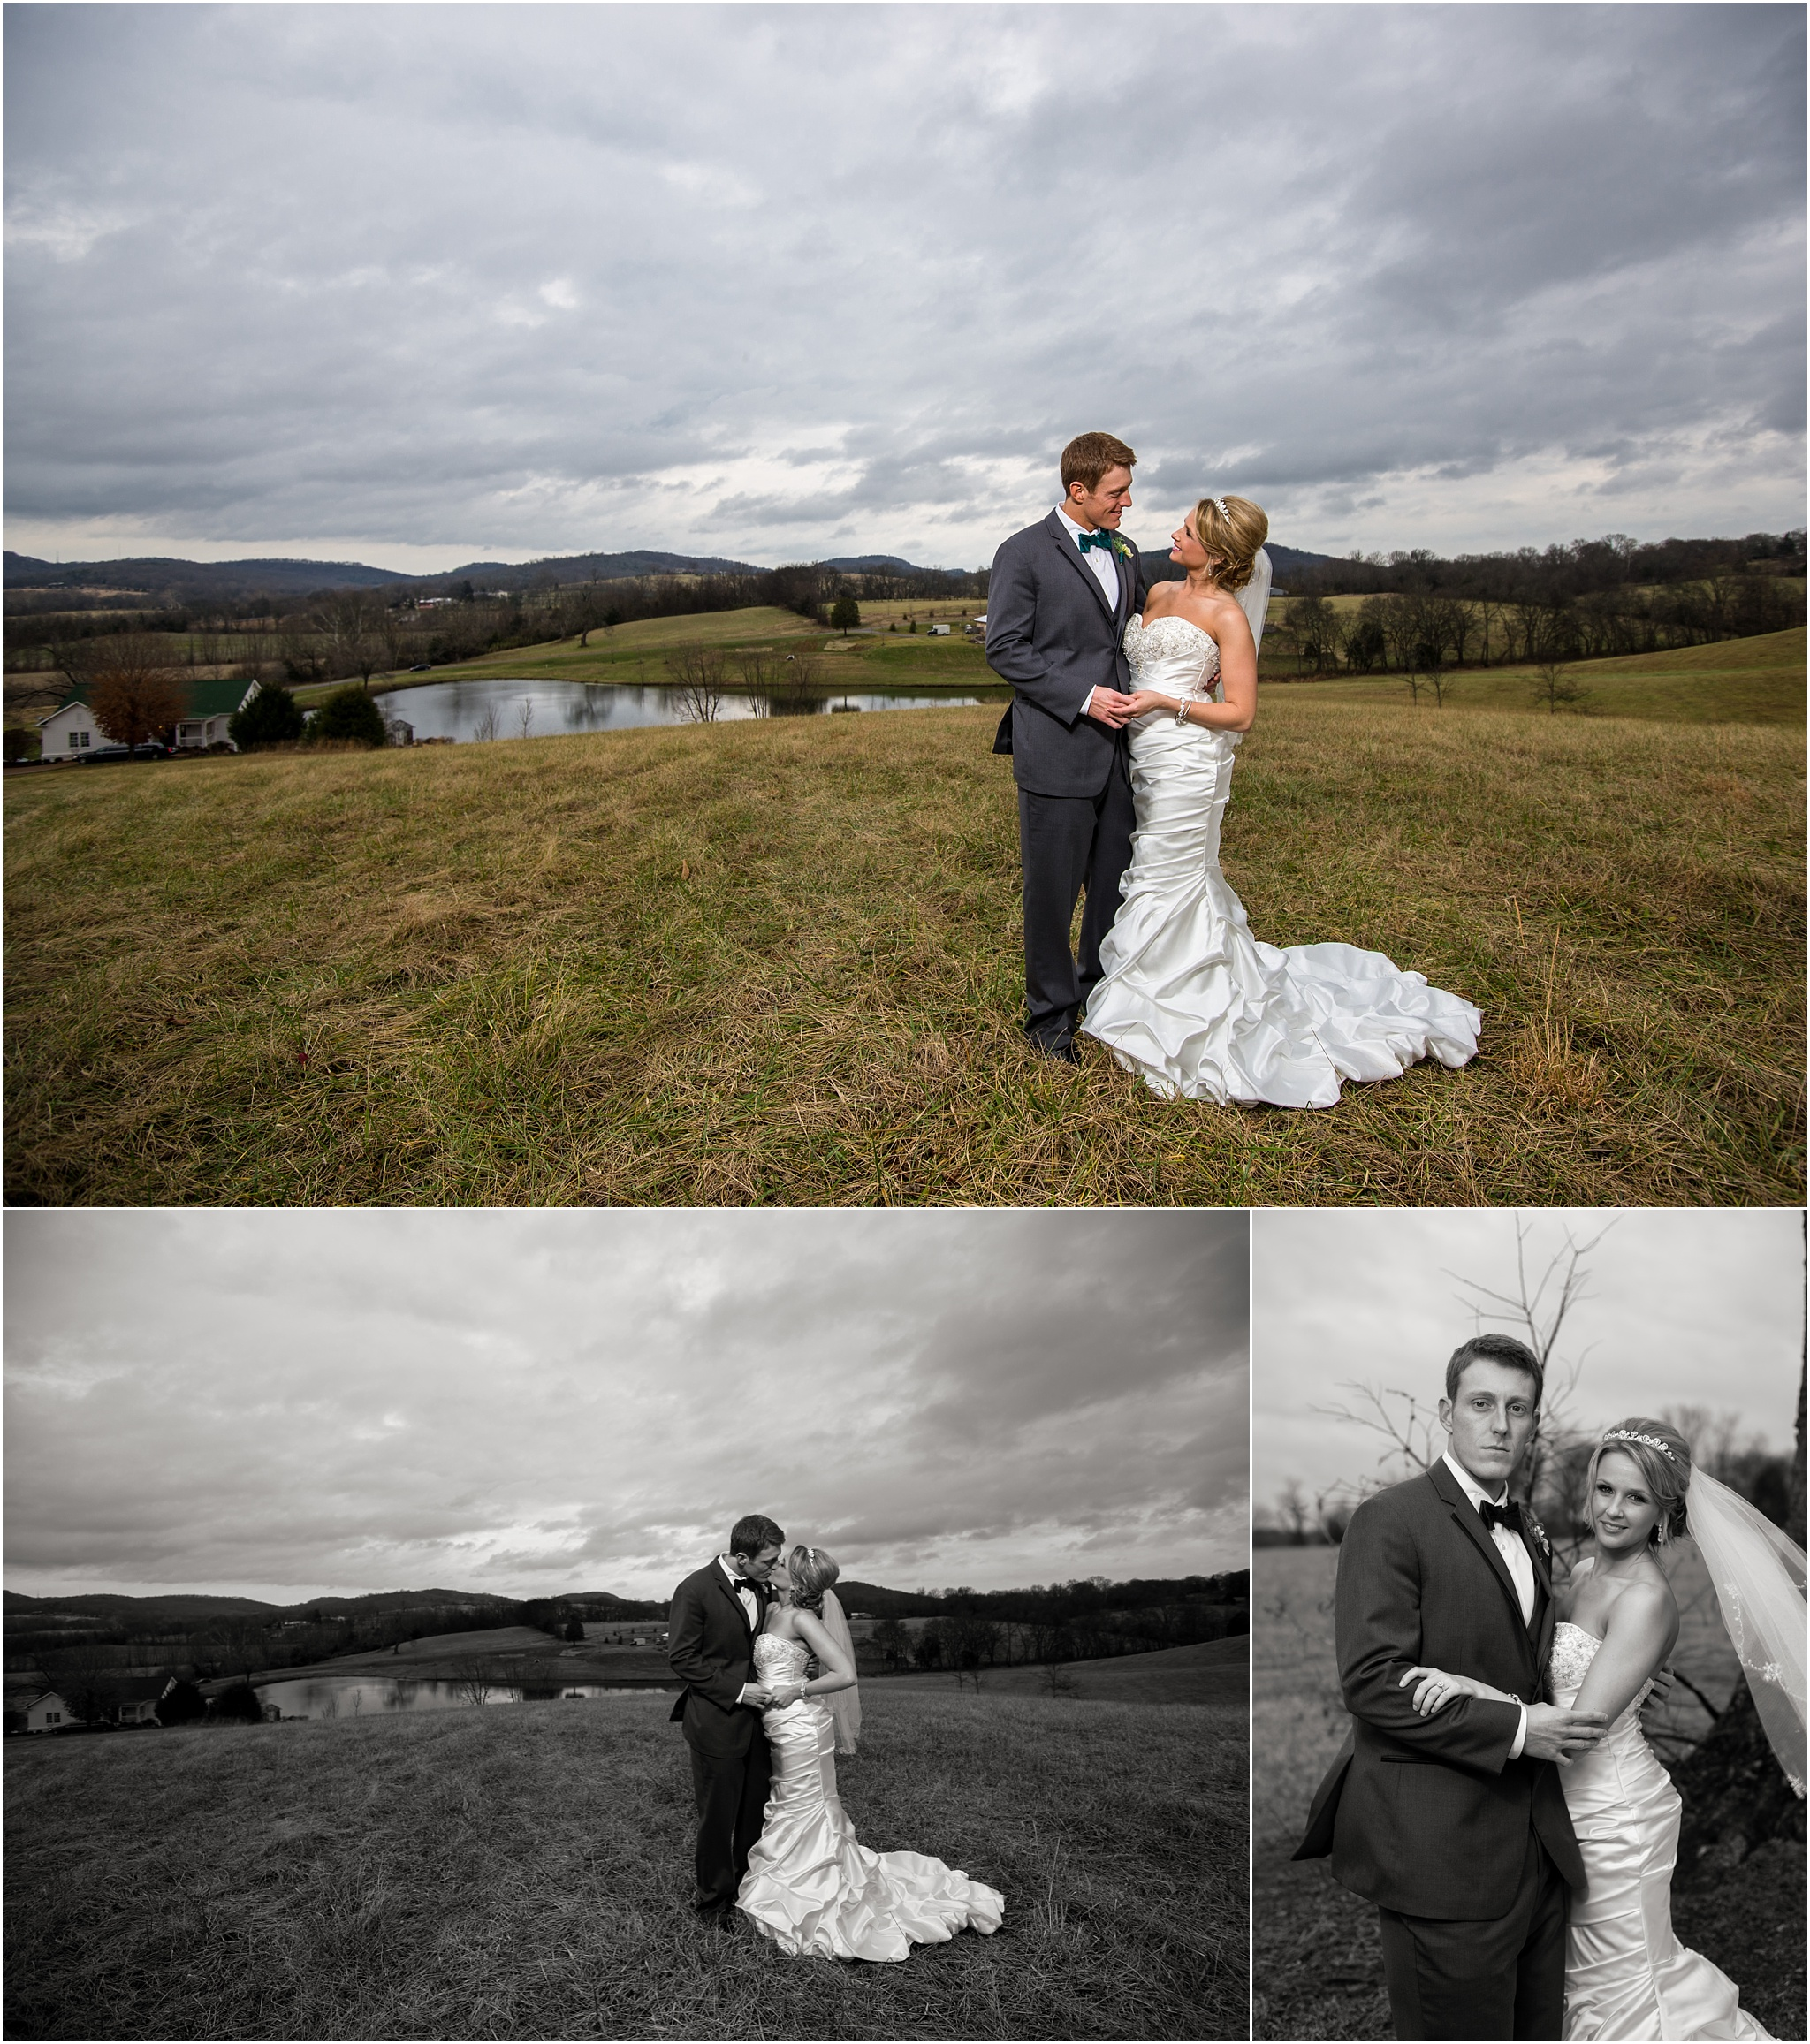 Greg Smit Photography Nashville wedding photographer Mint Springs farm 16